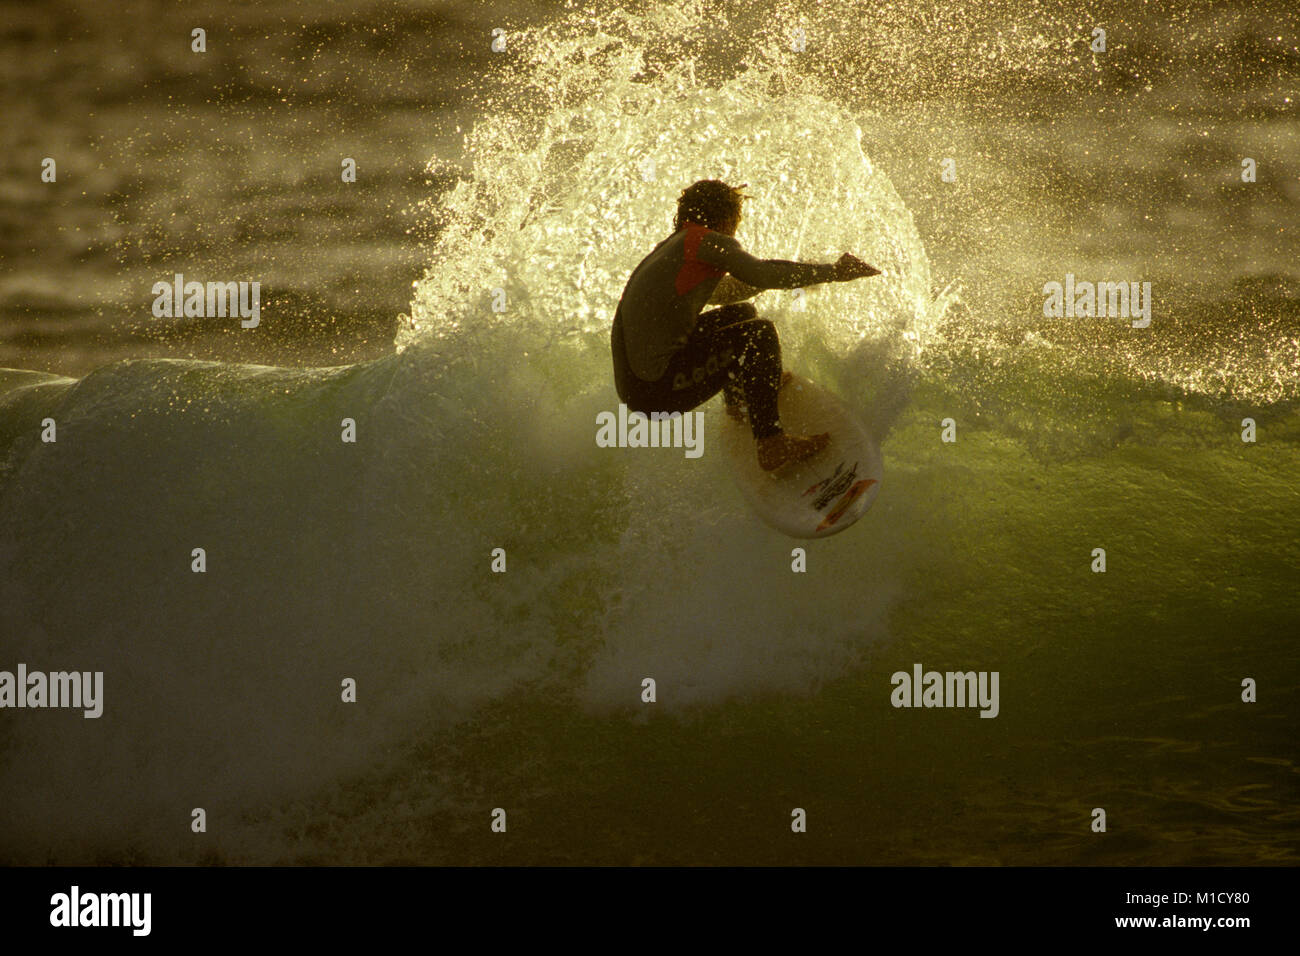 Mark Ochillupo performs his trademark off the lip manoeuvre at Fistral beach, Newquay, Cornwall, UK - Stock Image